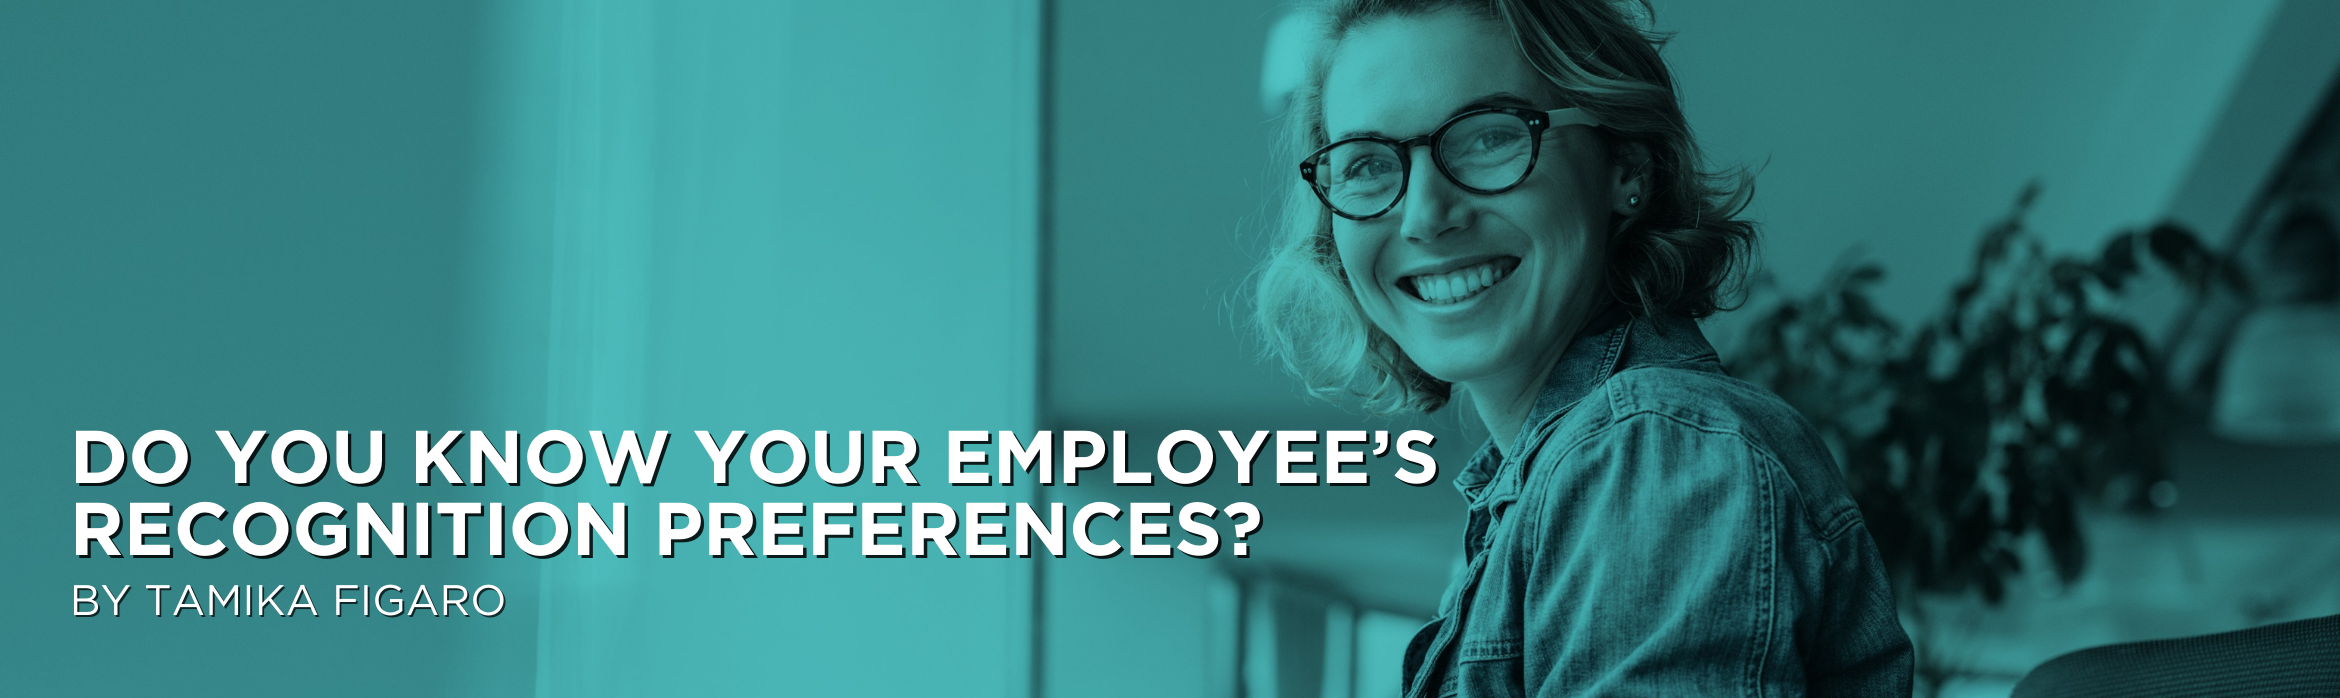 Do you know your employee's recognition preferences?